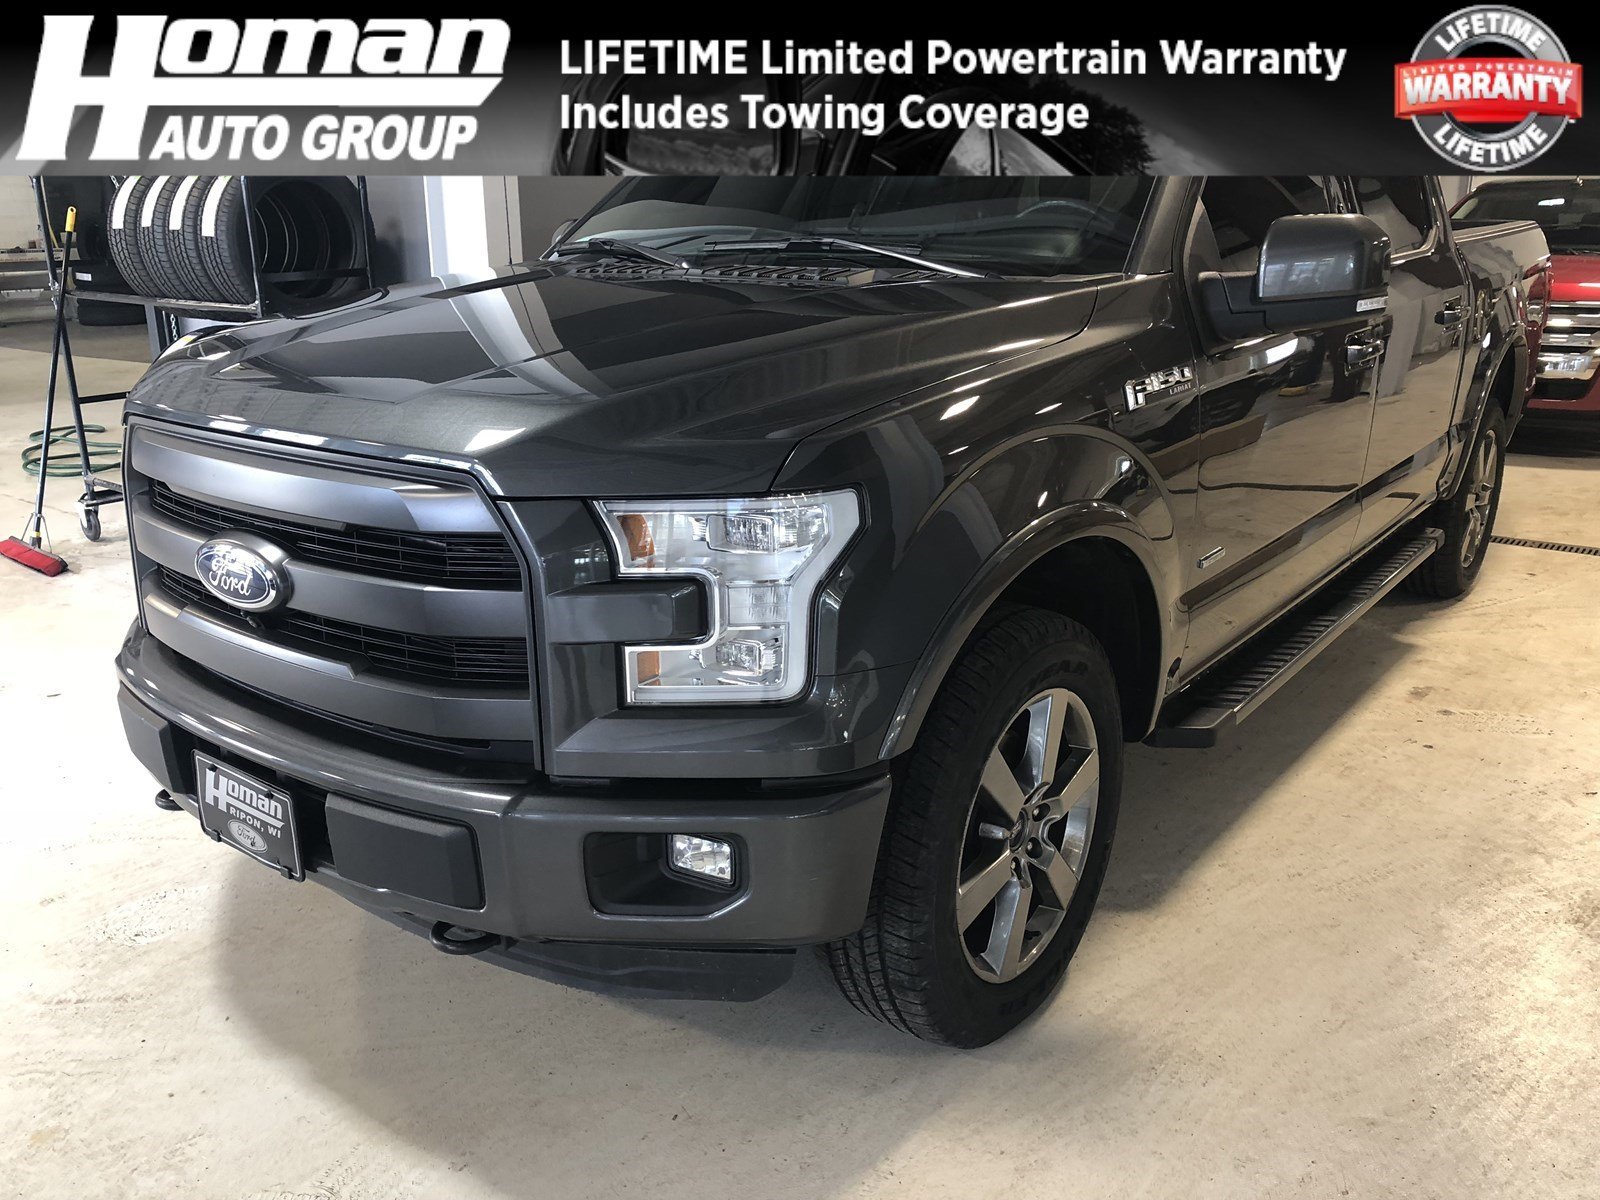 Beautiful 2016 ford F150 3.5 Ecoboost towing Capacity